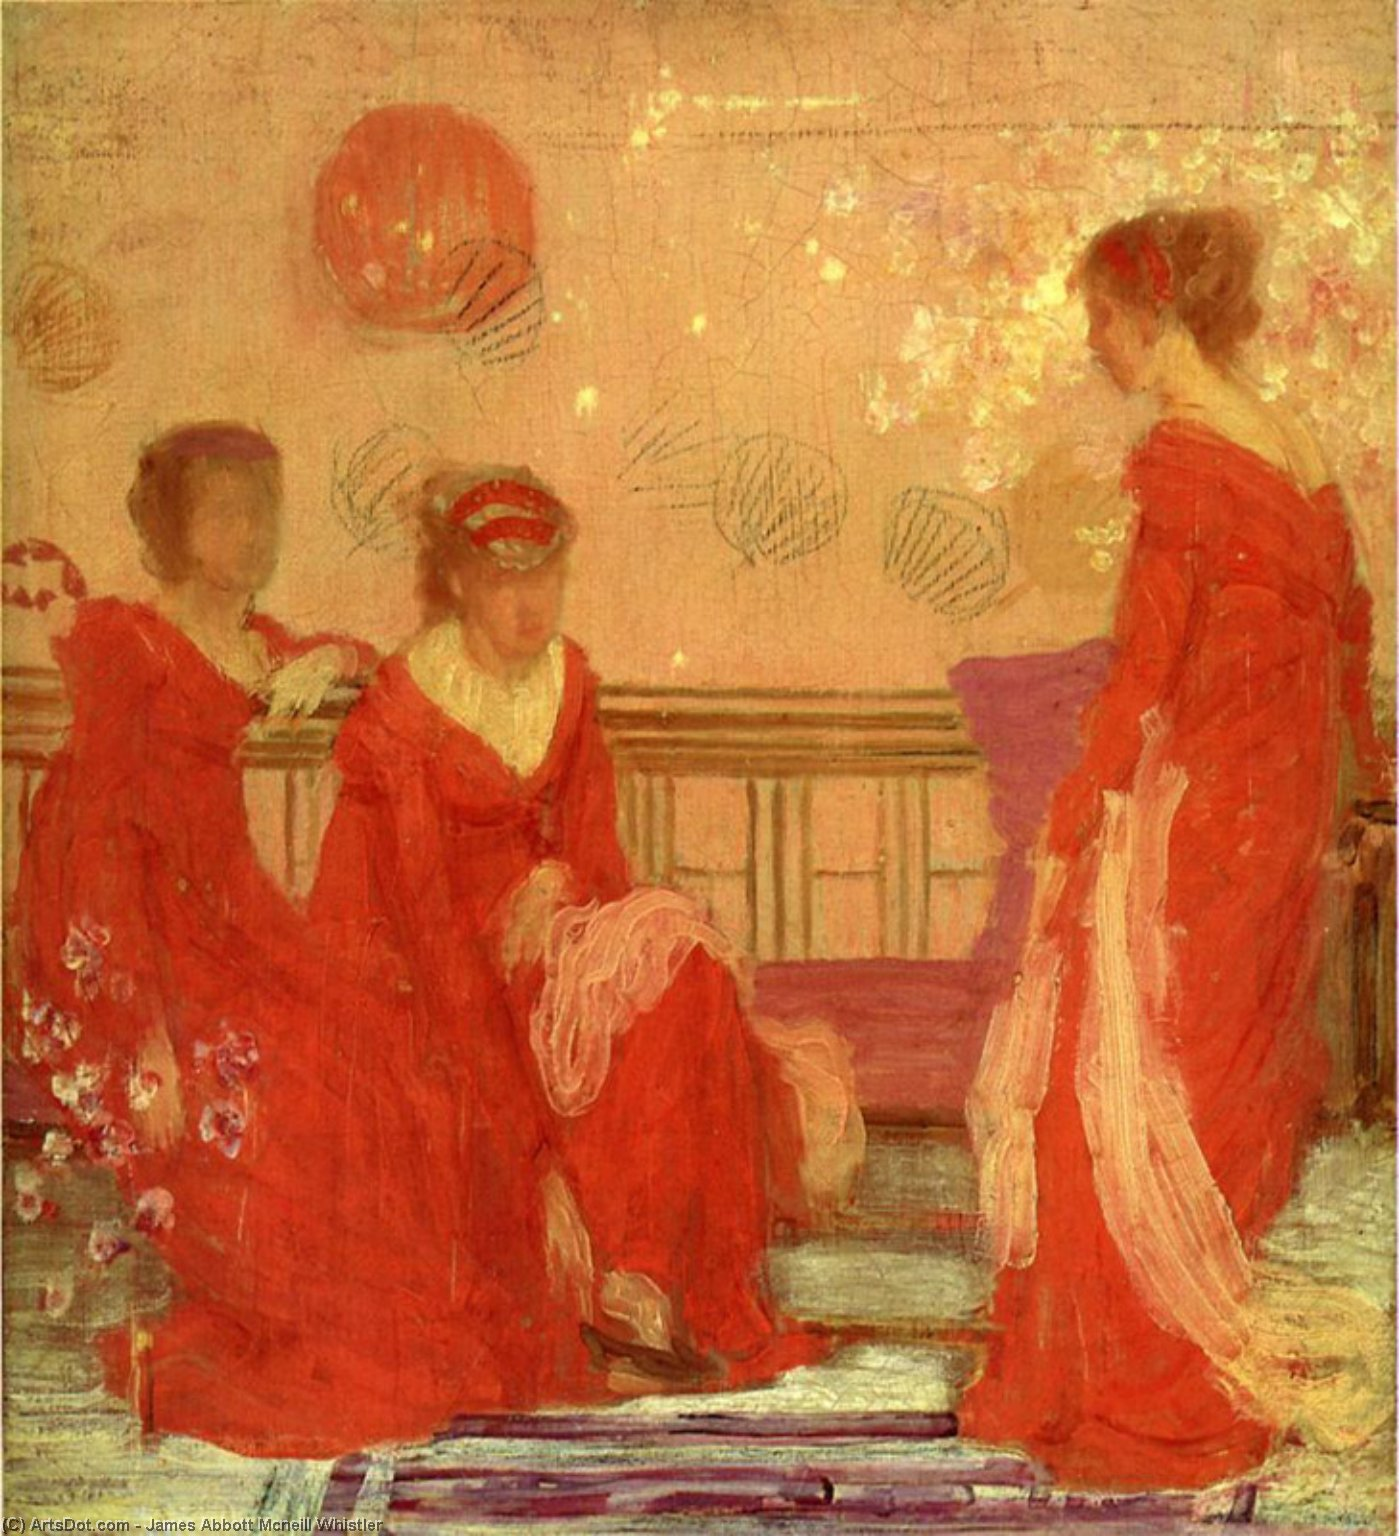 Wikioo.org - The Encyclopedia of Fine Arts - Painting, Artwork by James Abbott Mcneill Whistler - Harmony in Flesh Colour and Red